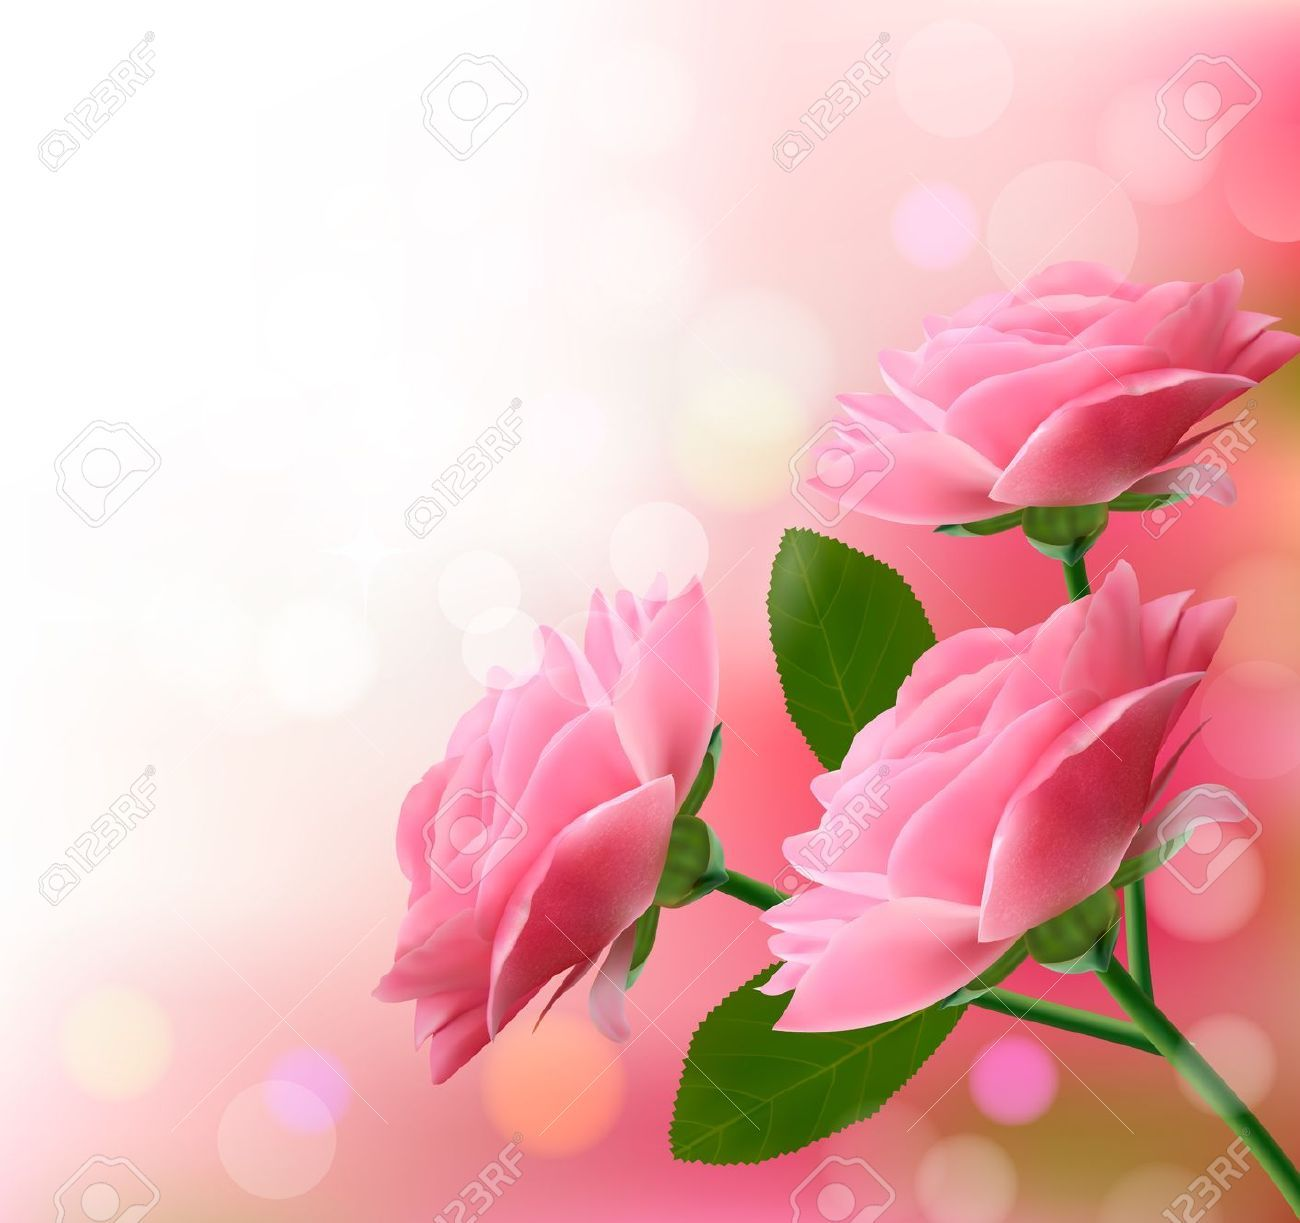 Background images flowers pink 38 wallpapers adorable wallpapers flower background images flowers pink mightylinksfo Gallery